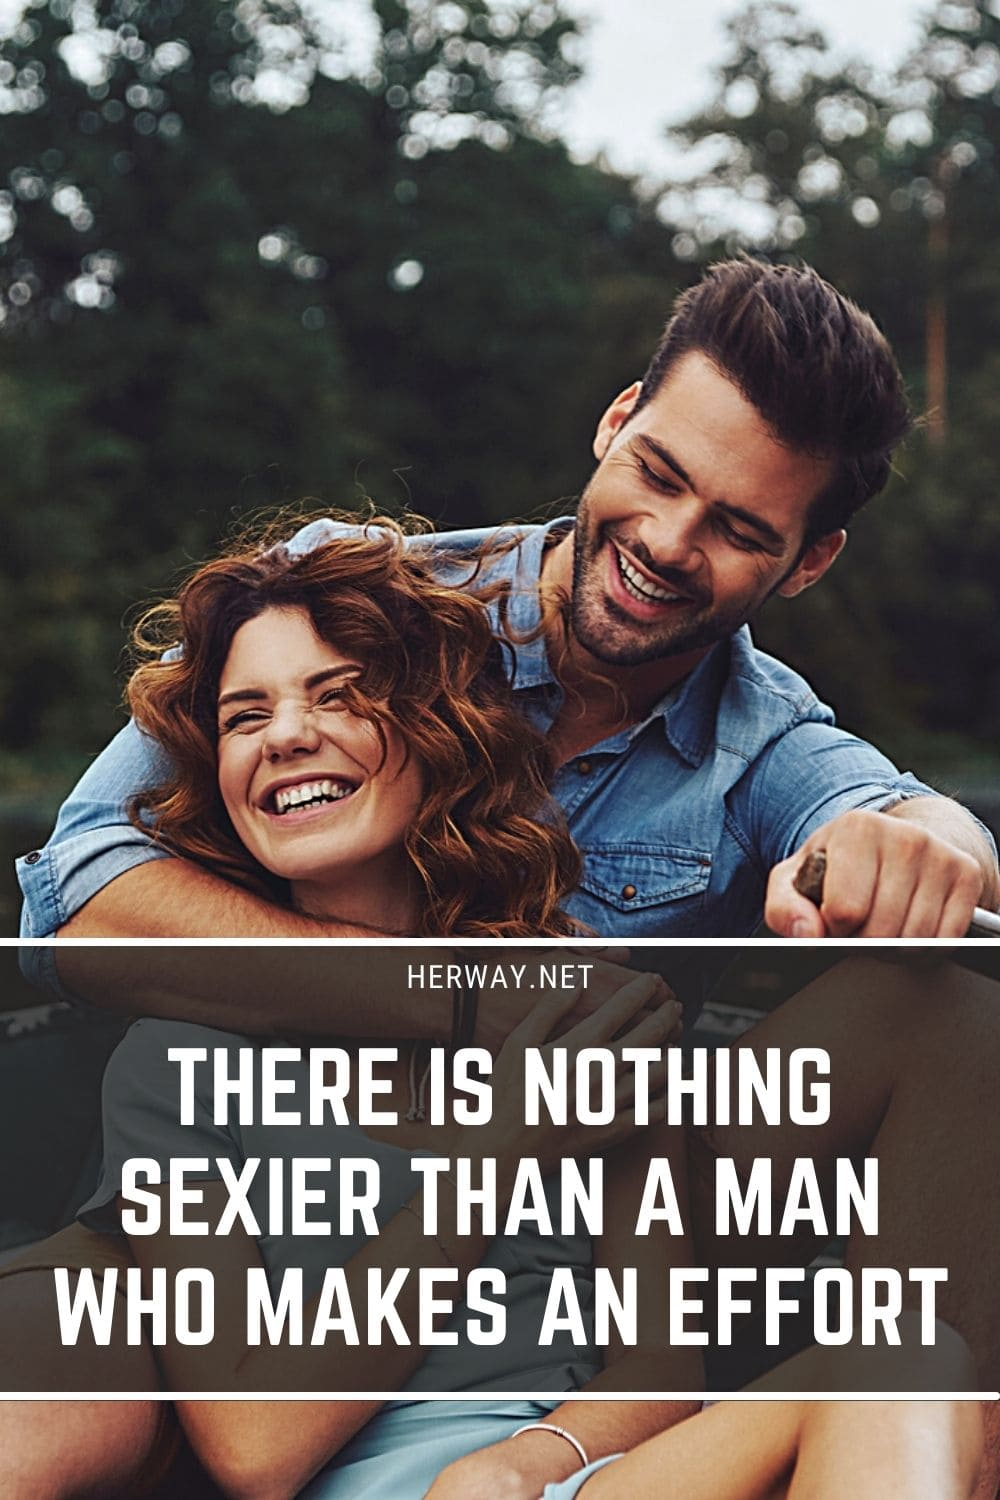 There Is Nothing Sexier Than A Man Who Makes An Effort